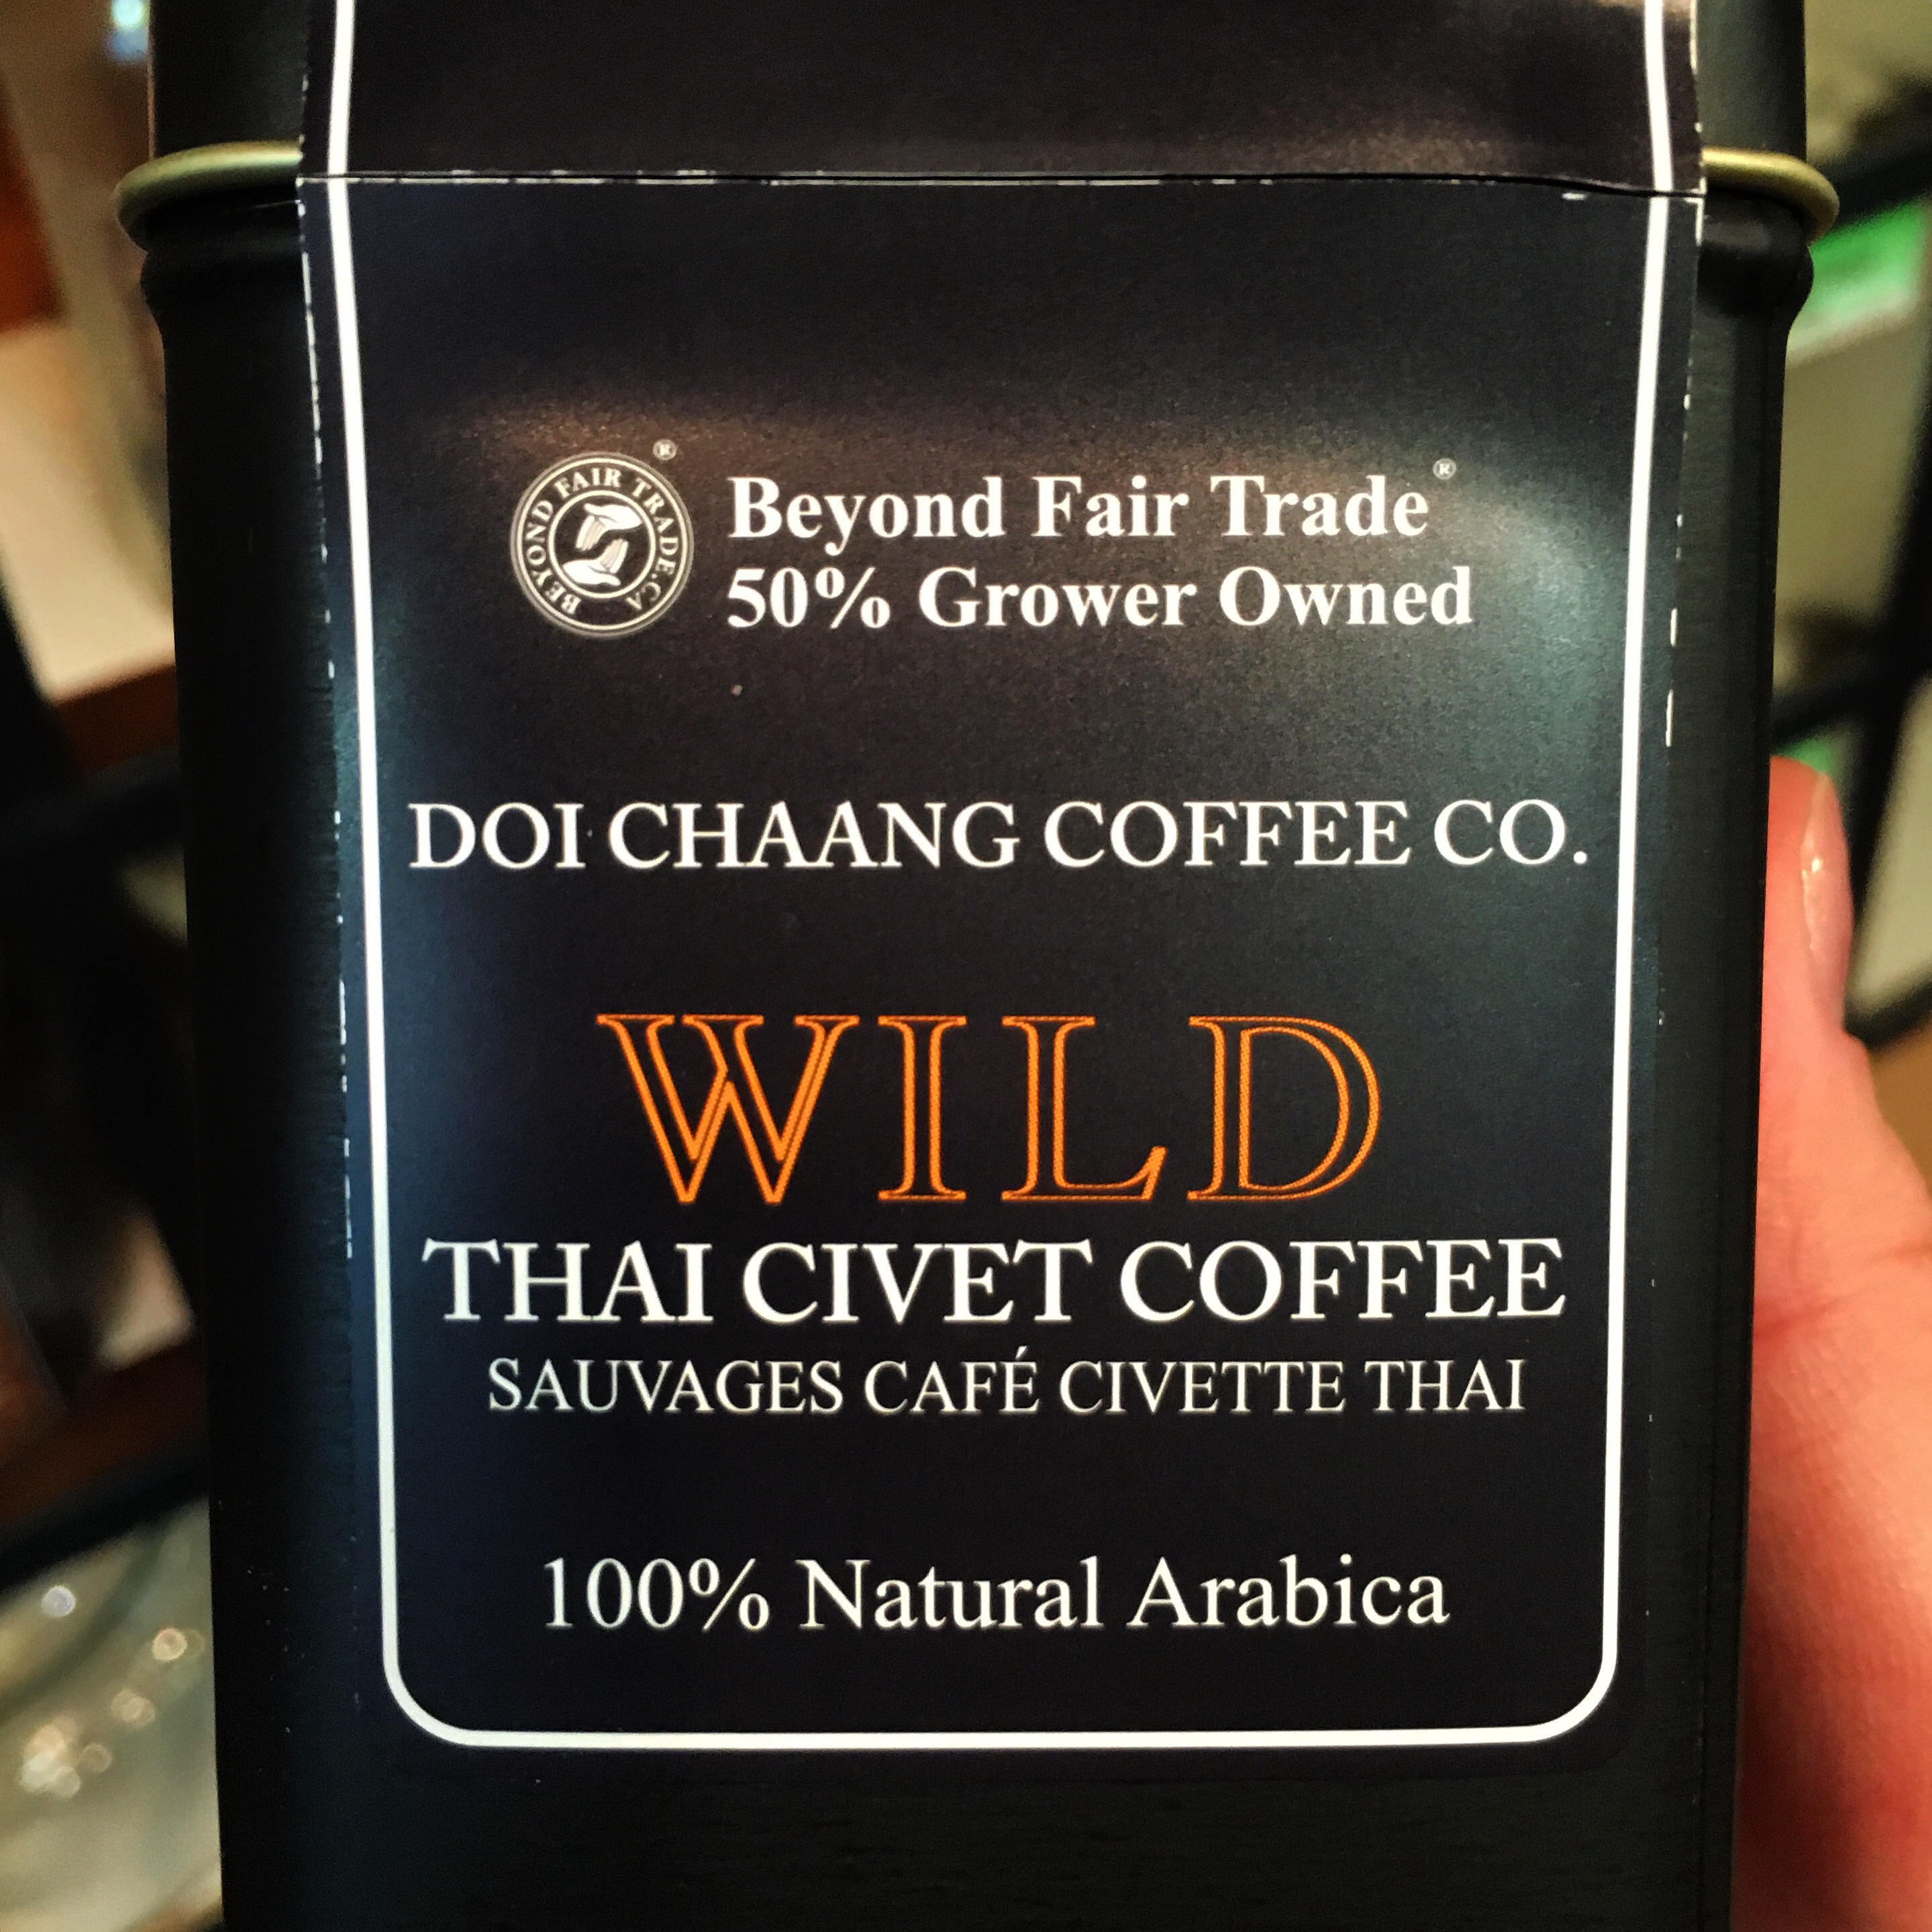 What is wild civet coffee?